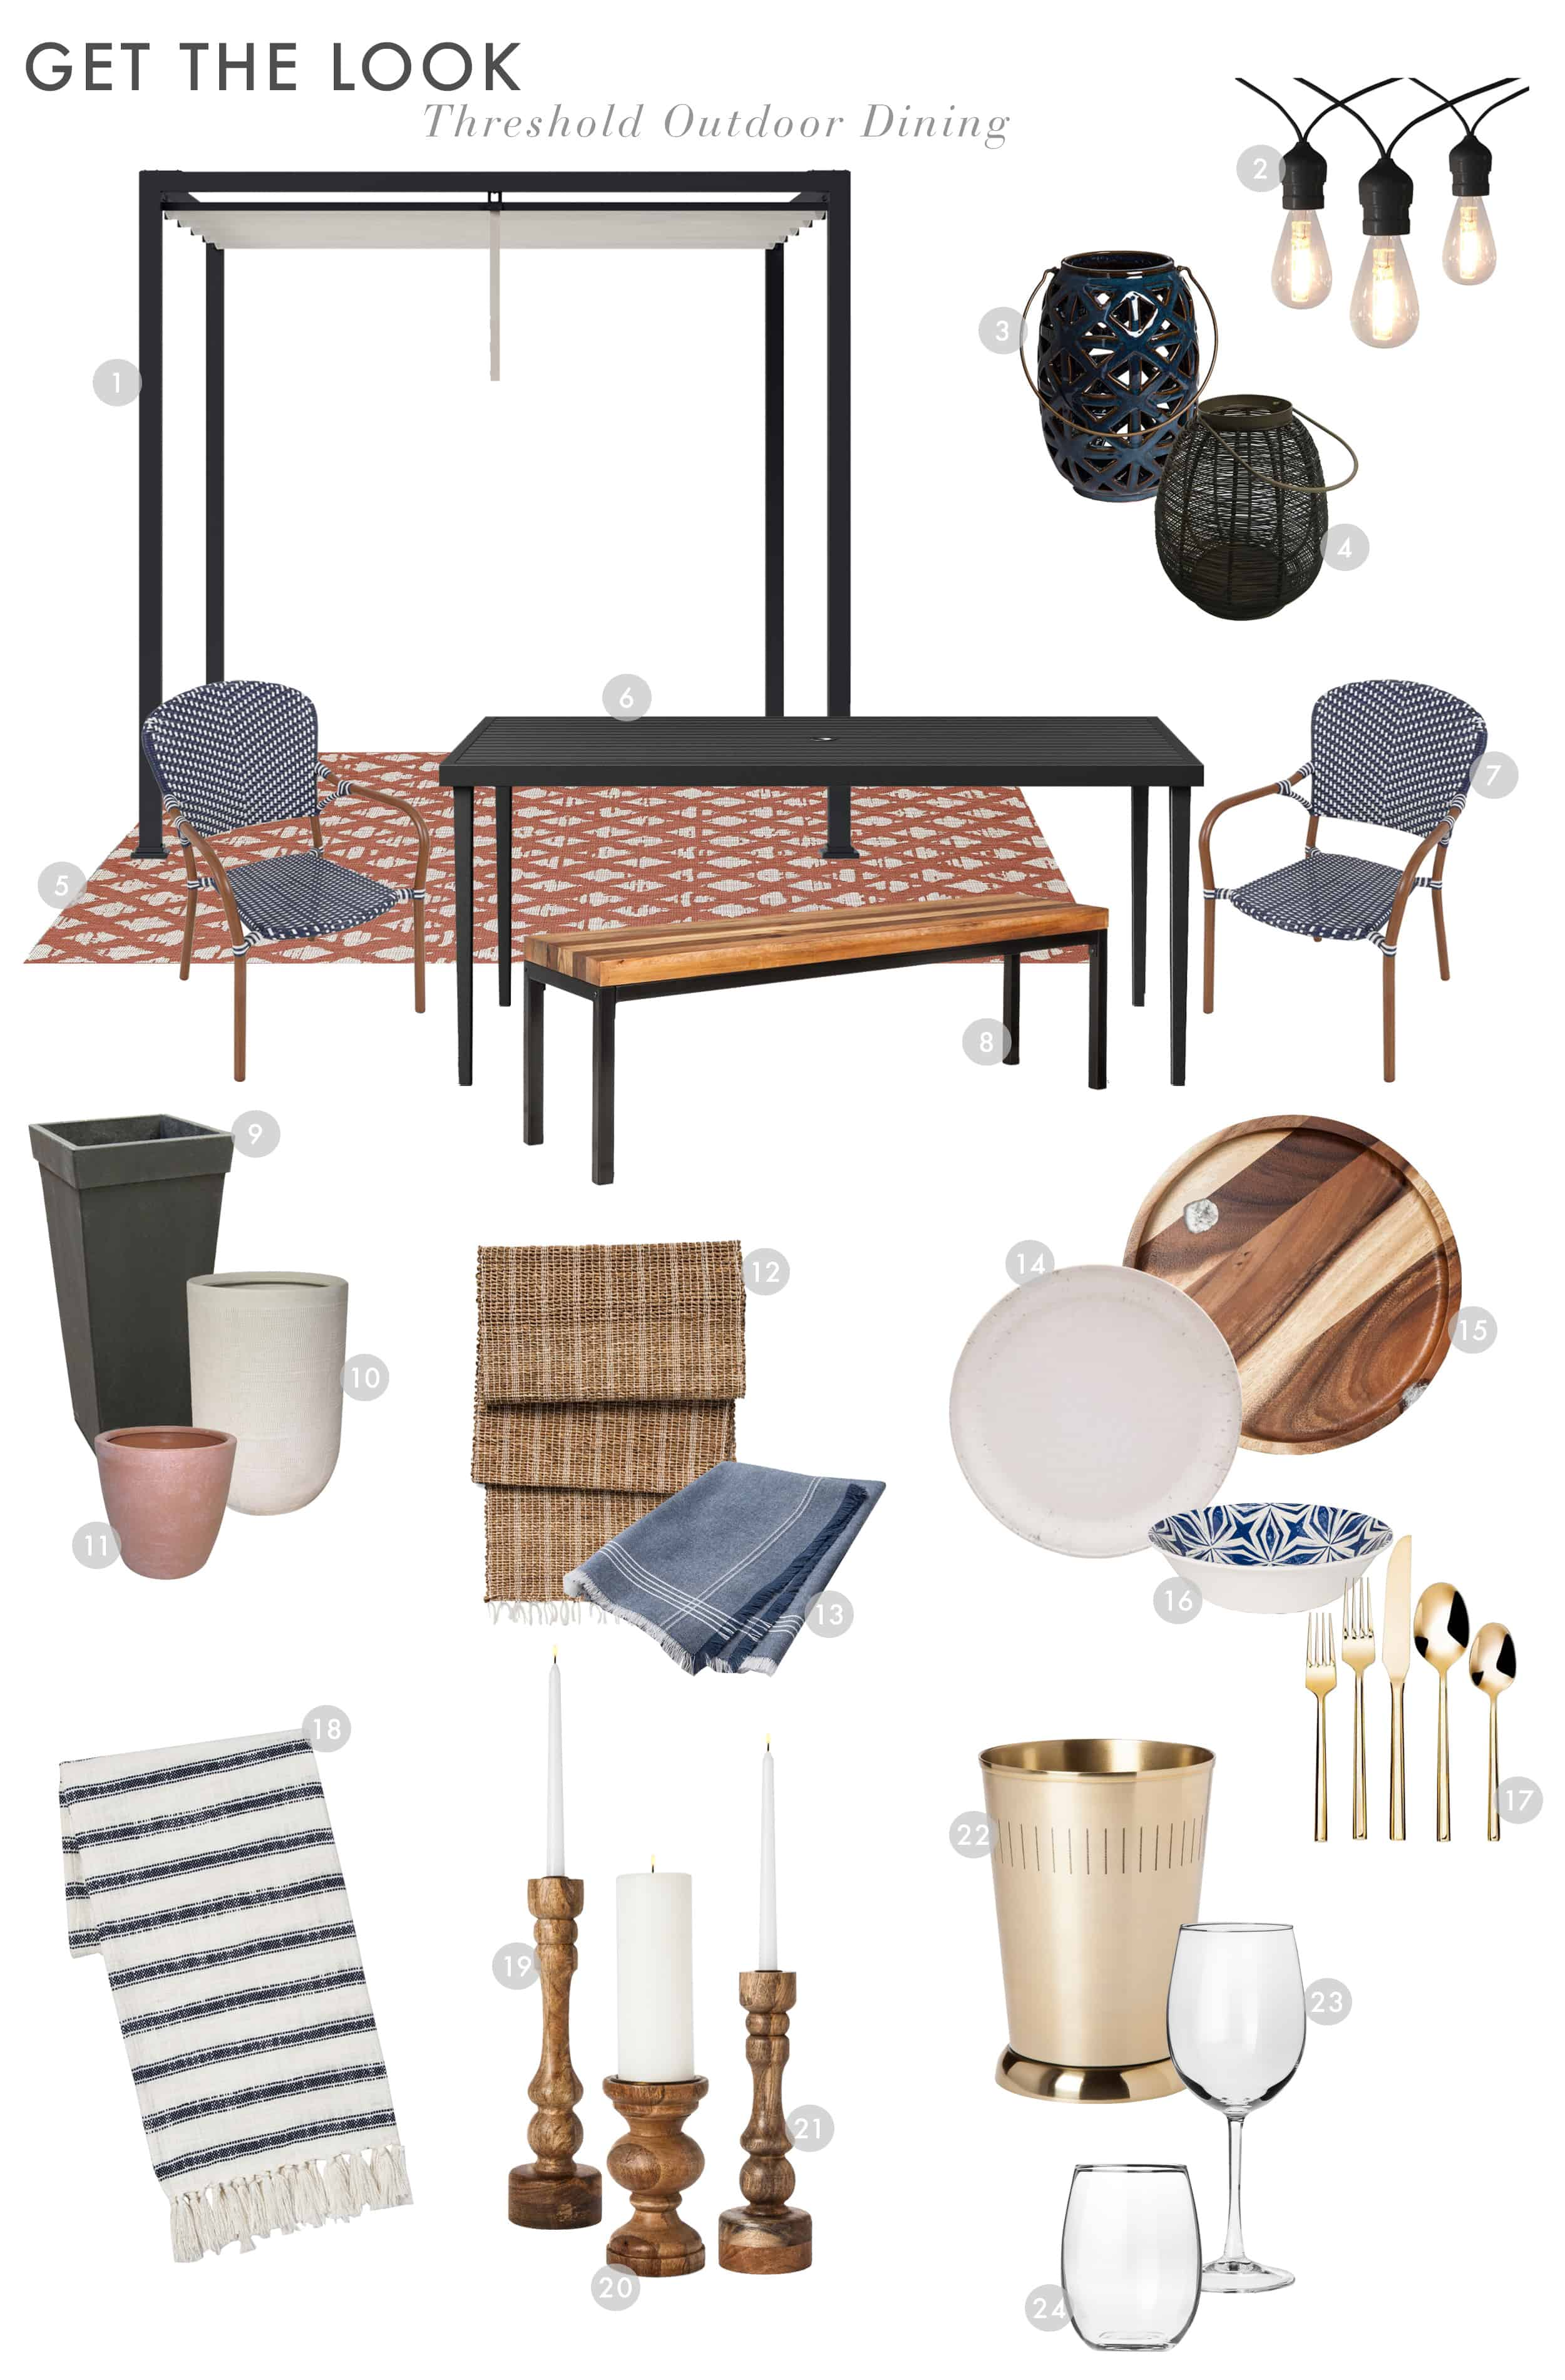 Emily Henderson Target Outdoor Collection Threshold Get The Look1